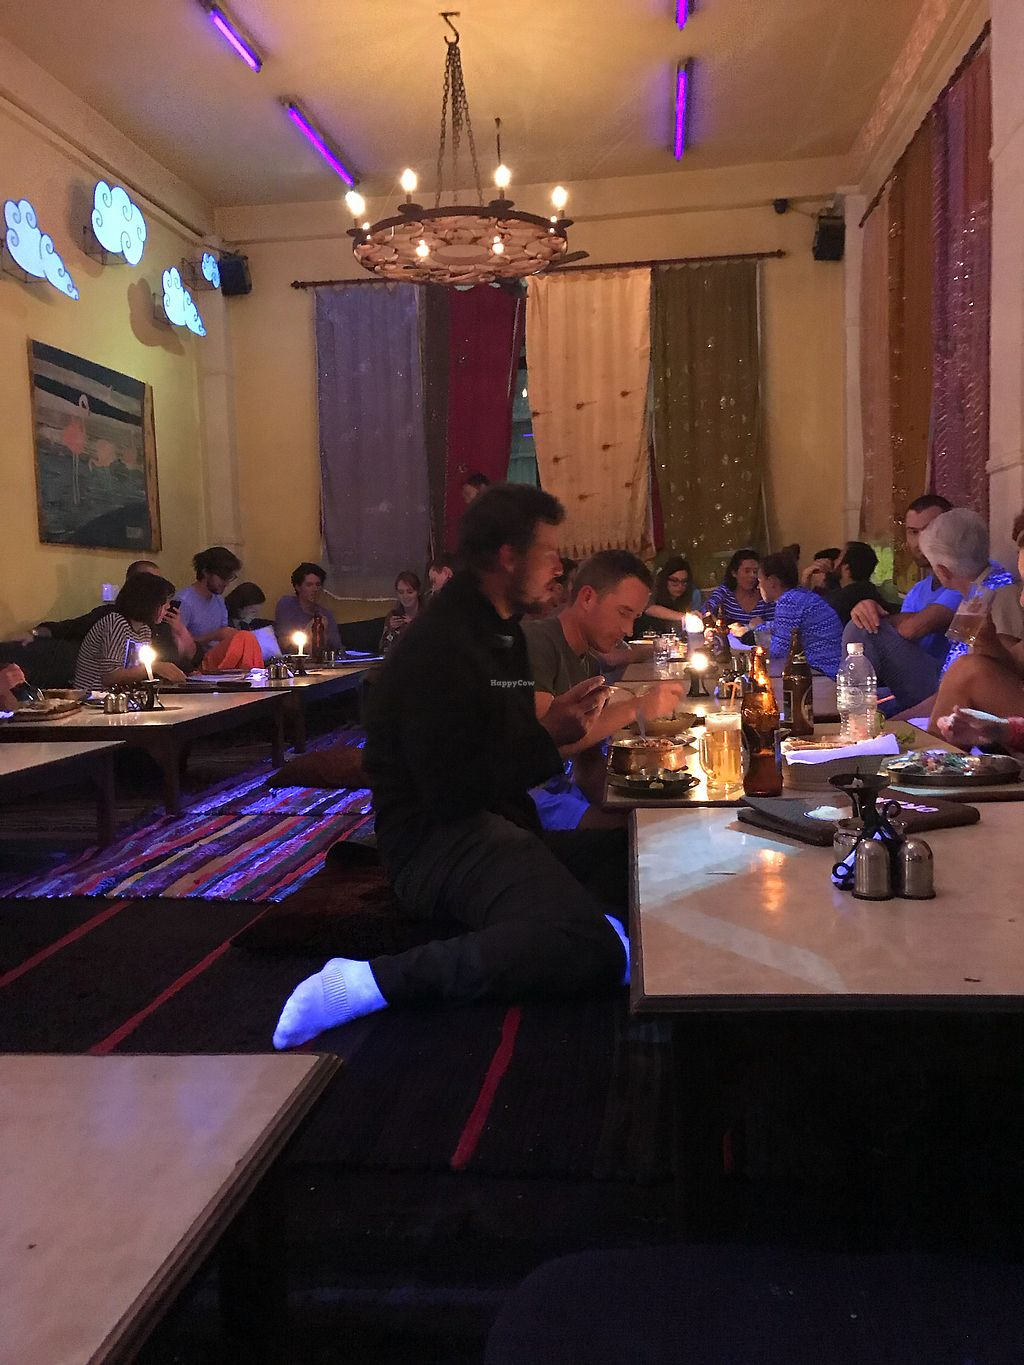 """Photo of OR2K  by <a href=""""/members/profile/thetravelingvegan"""">thetravelingvegan</a> <br/>Very cool atmosphere. Service was on top of things.  <br/> March 11, 2018  - <a href='/contact/abuse/image/17252/369145'>Report</a>"""